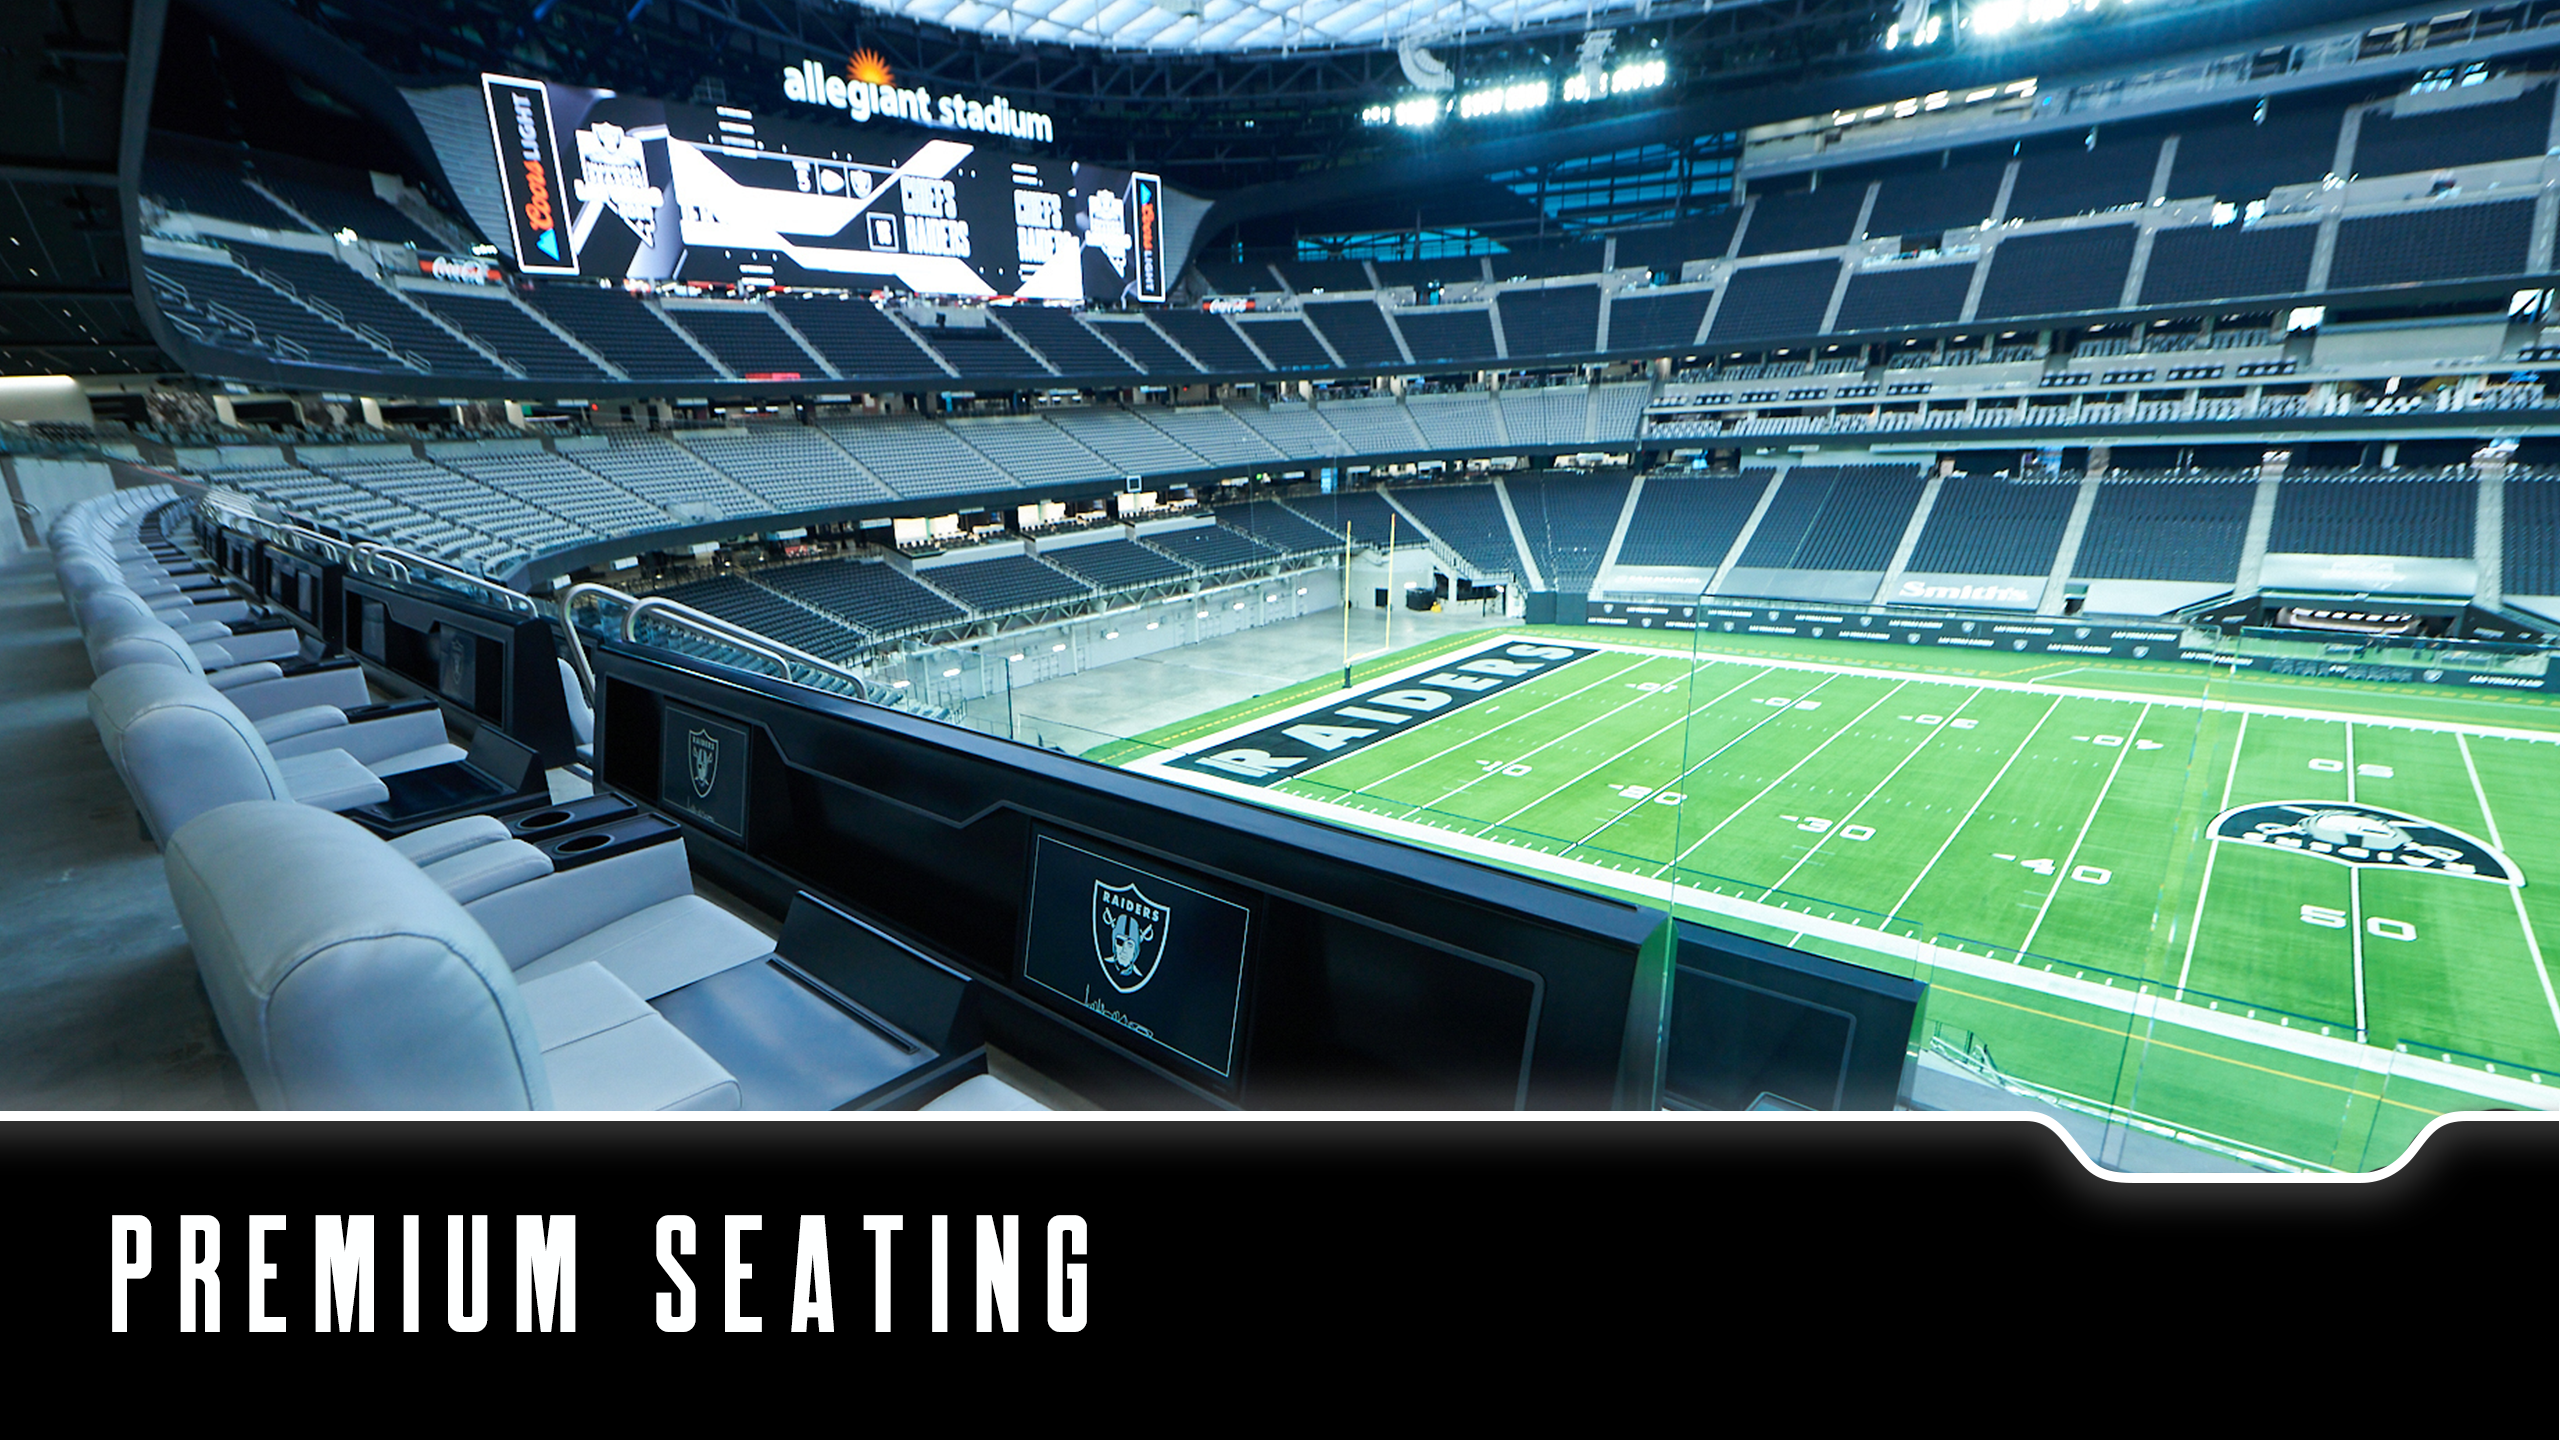 Learn more about Premium Seating at Allegiant Stadium